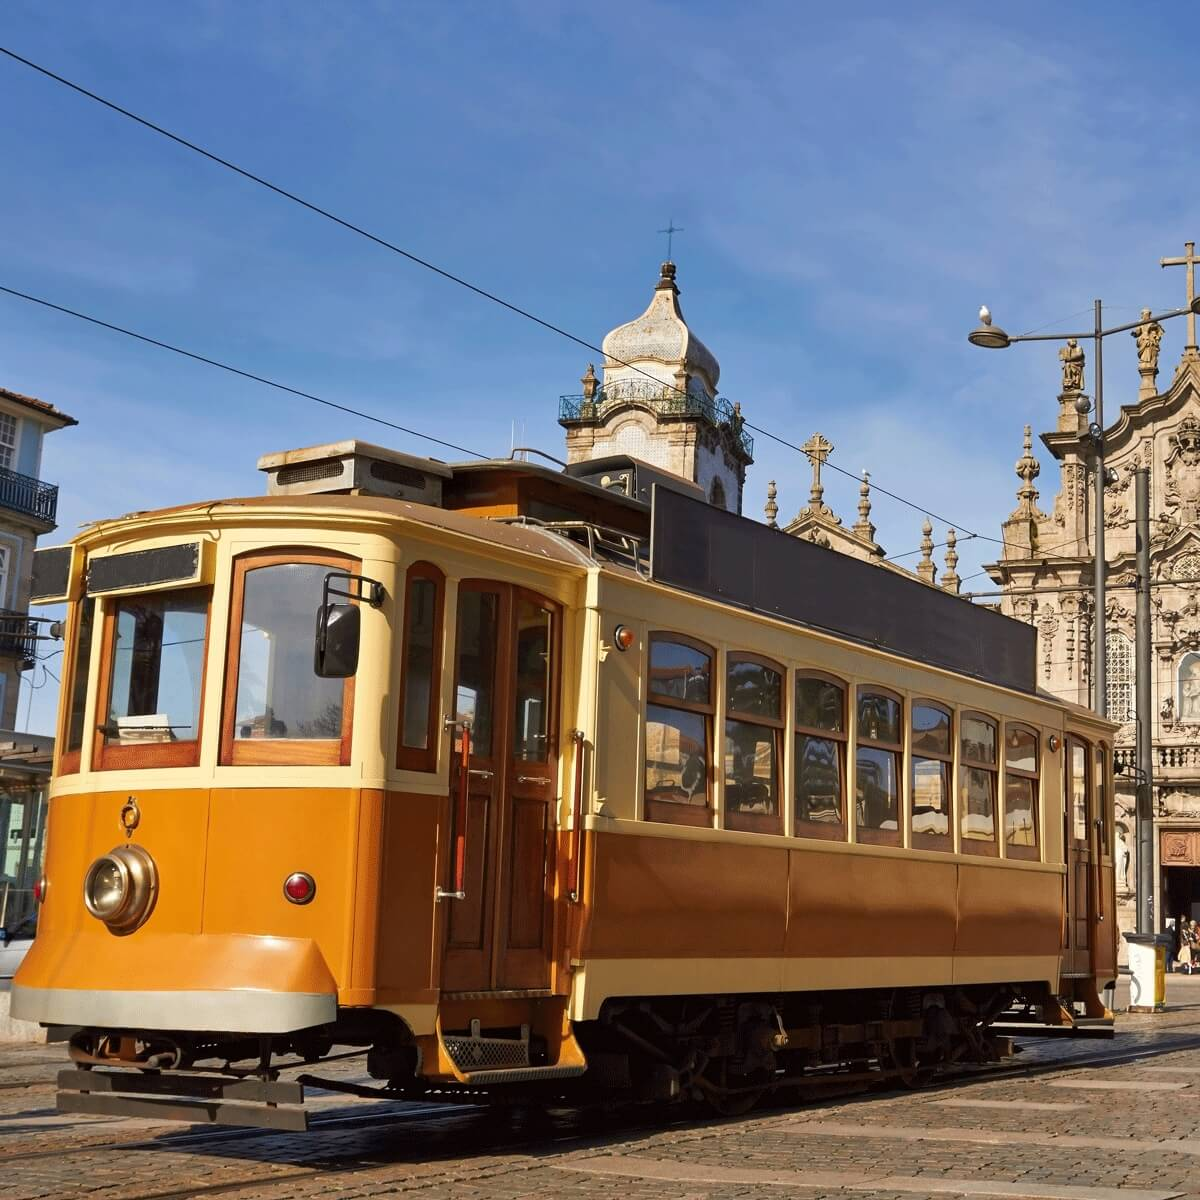 An old cable car in Portugal